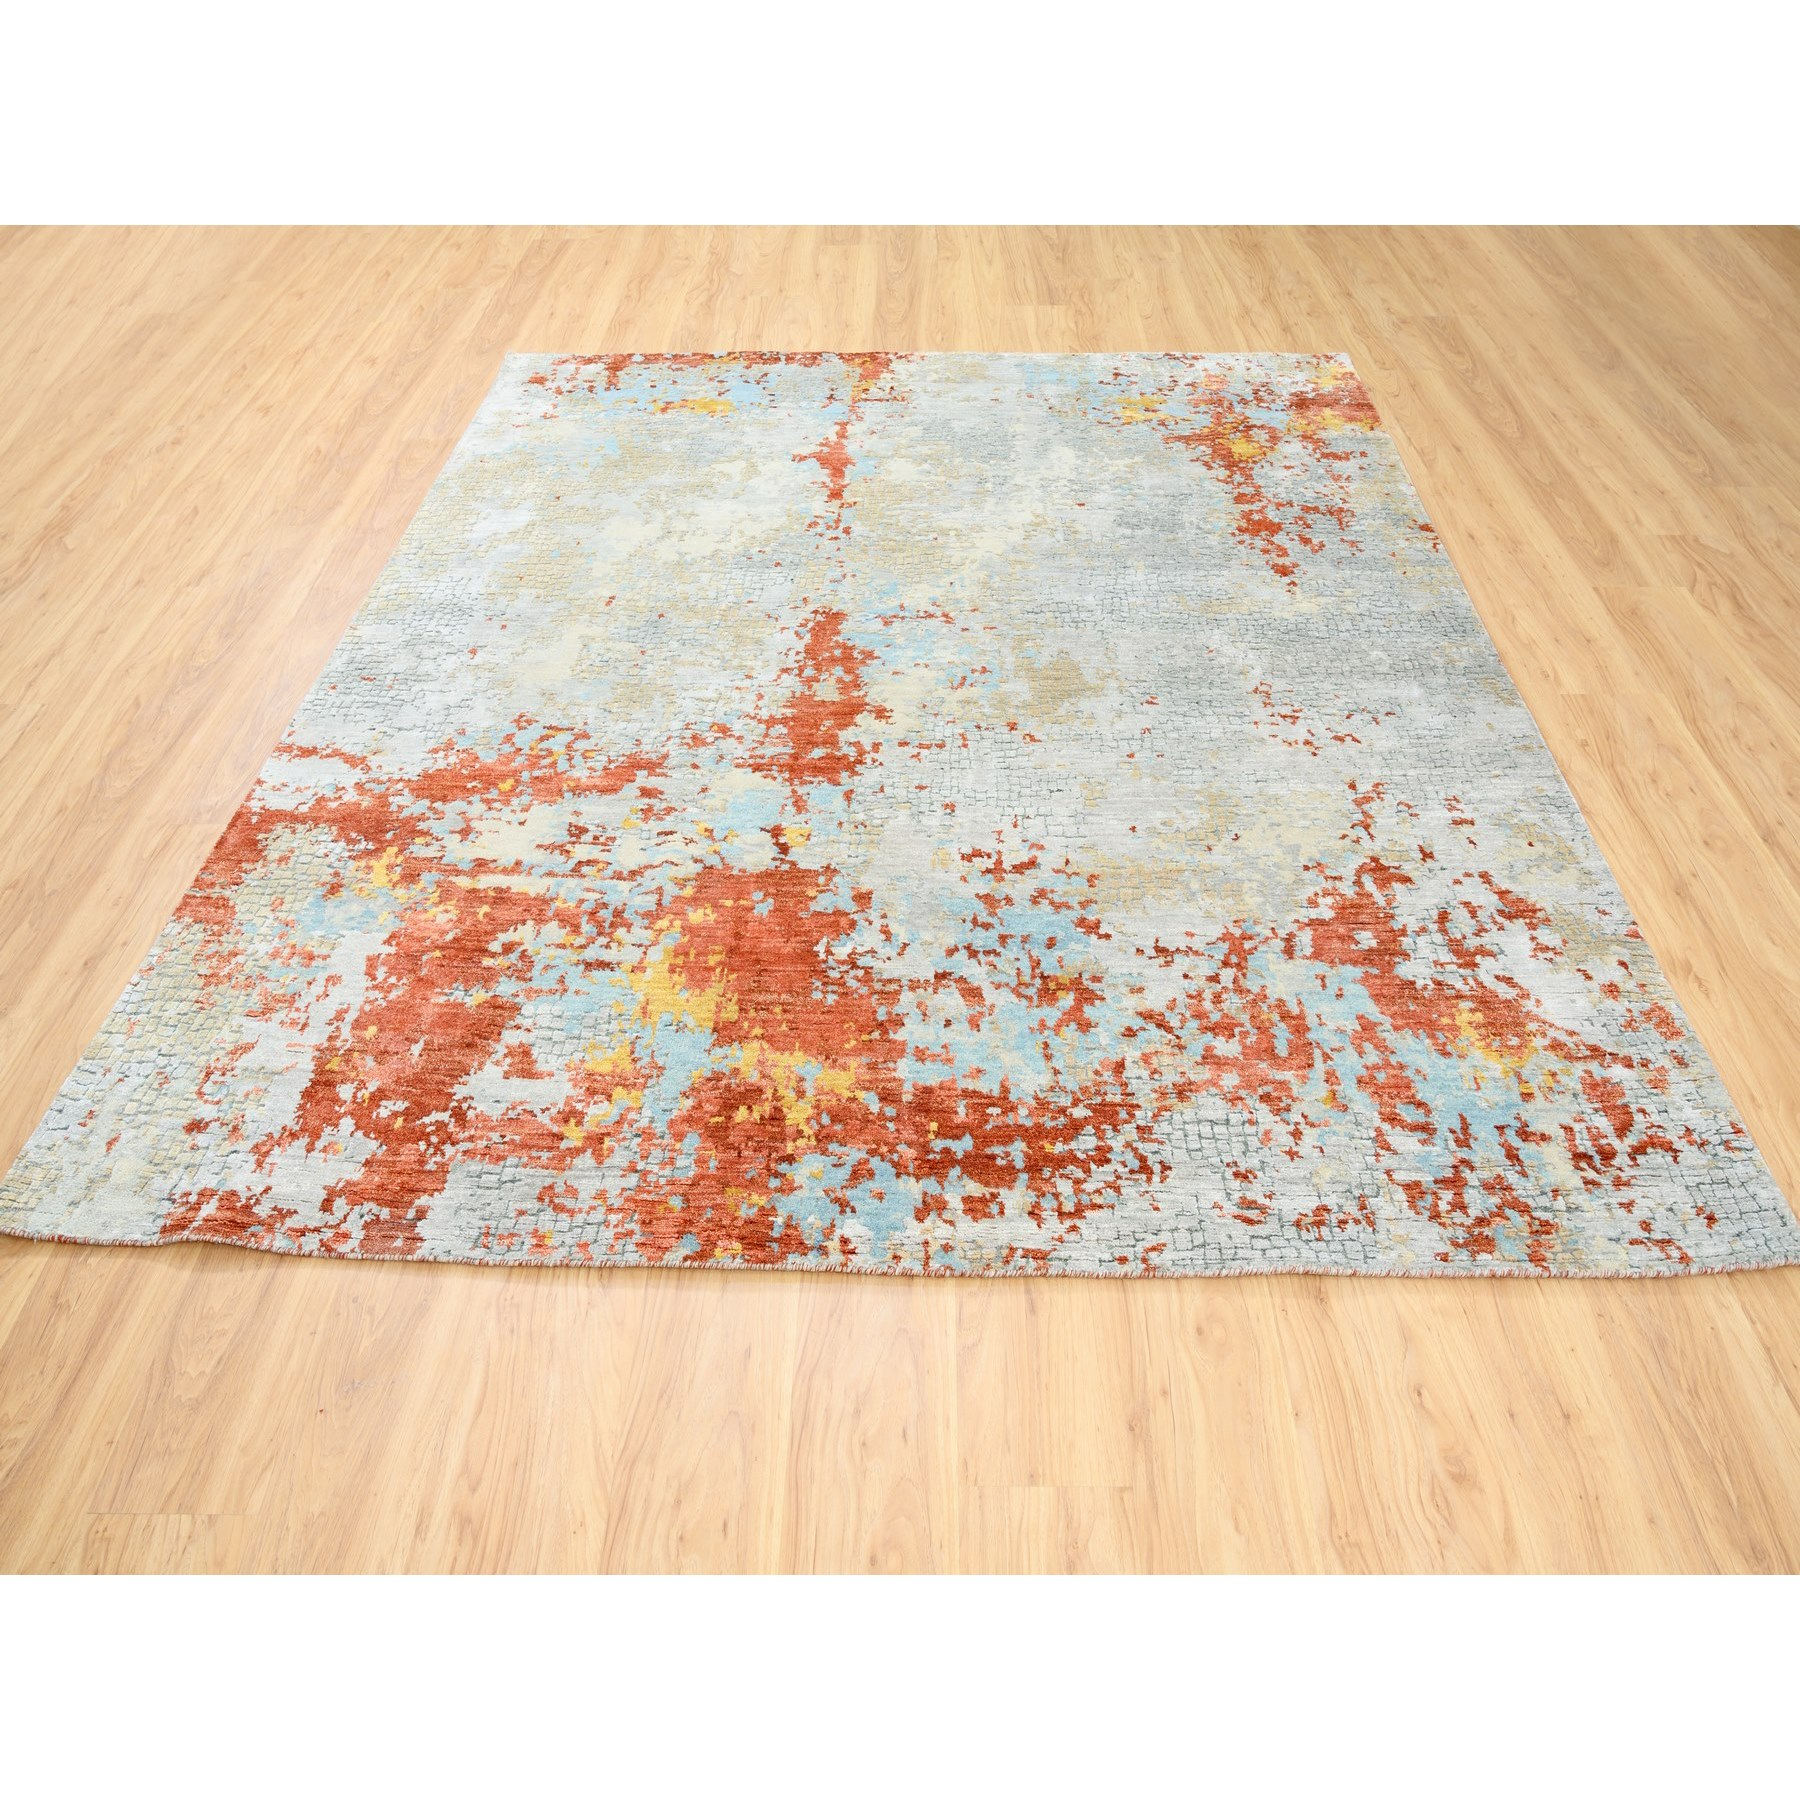 """7'8""""x8'1"""" Wool Abstract with Fire Mosaic Design Hand Knotted Oriental Square Rug"""